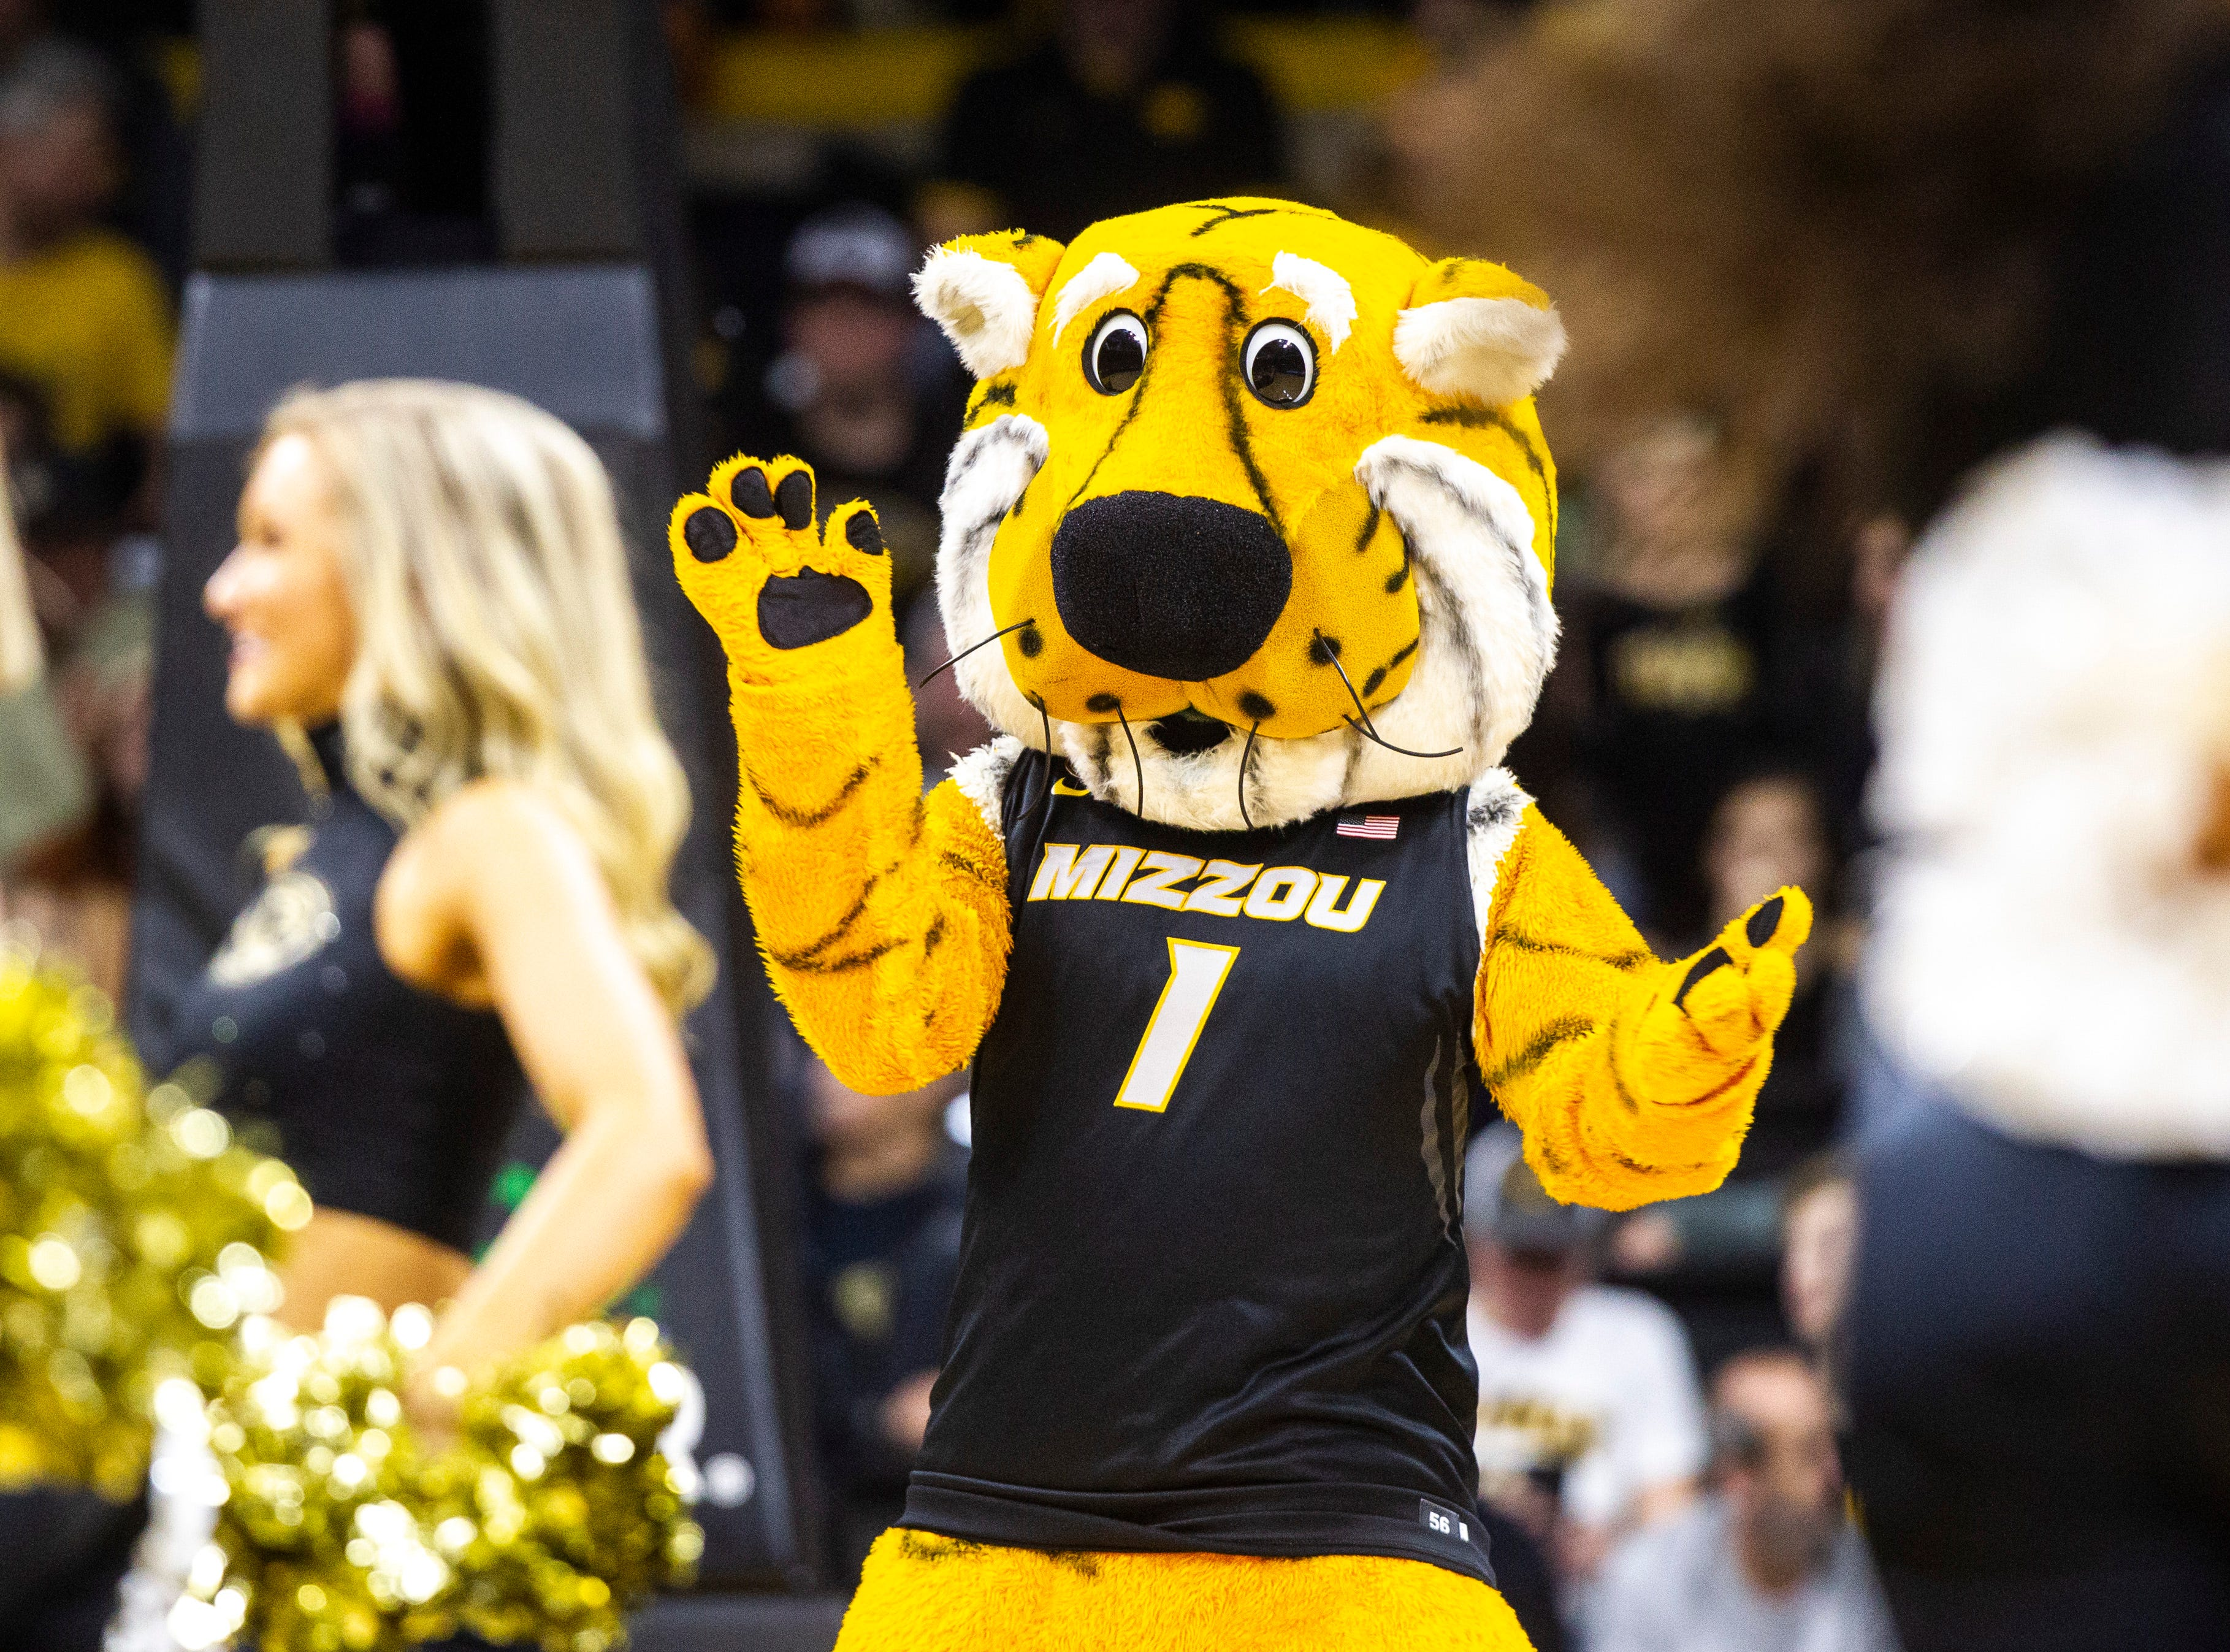 Truman the Tiger, Missouri's mascot, stands on the court during a NCAA women's basketball tournament second-round game, Sunday, March 24, 2019, at Carver-Hawkeye Arena in Iowa City, Iowa.